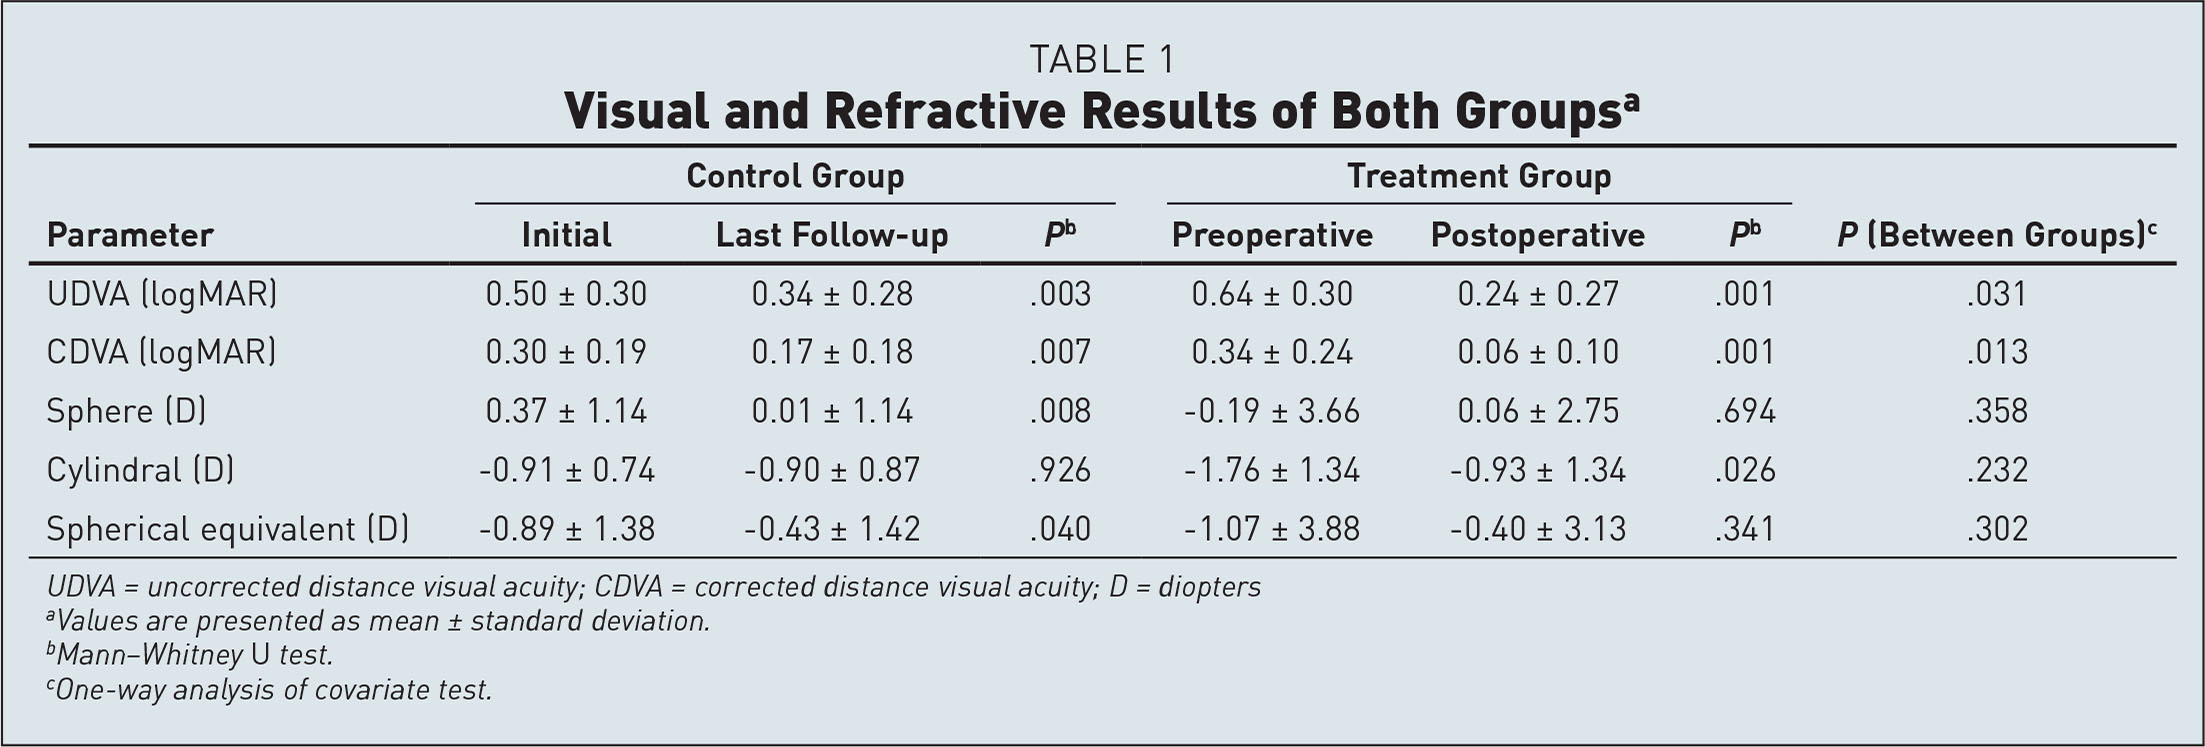 Visual and Refractive Results of Both Groupsa